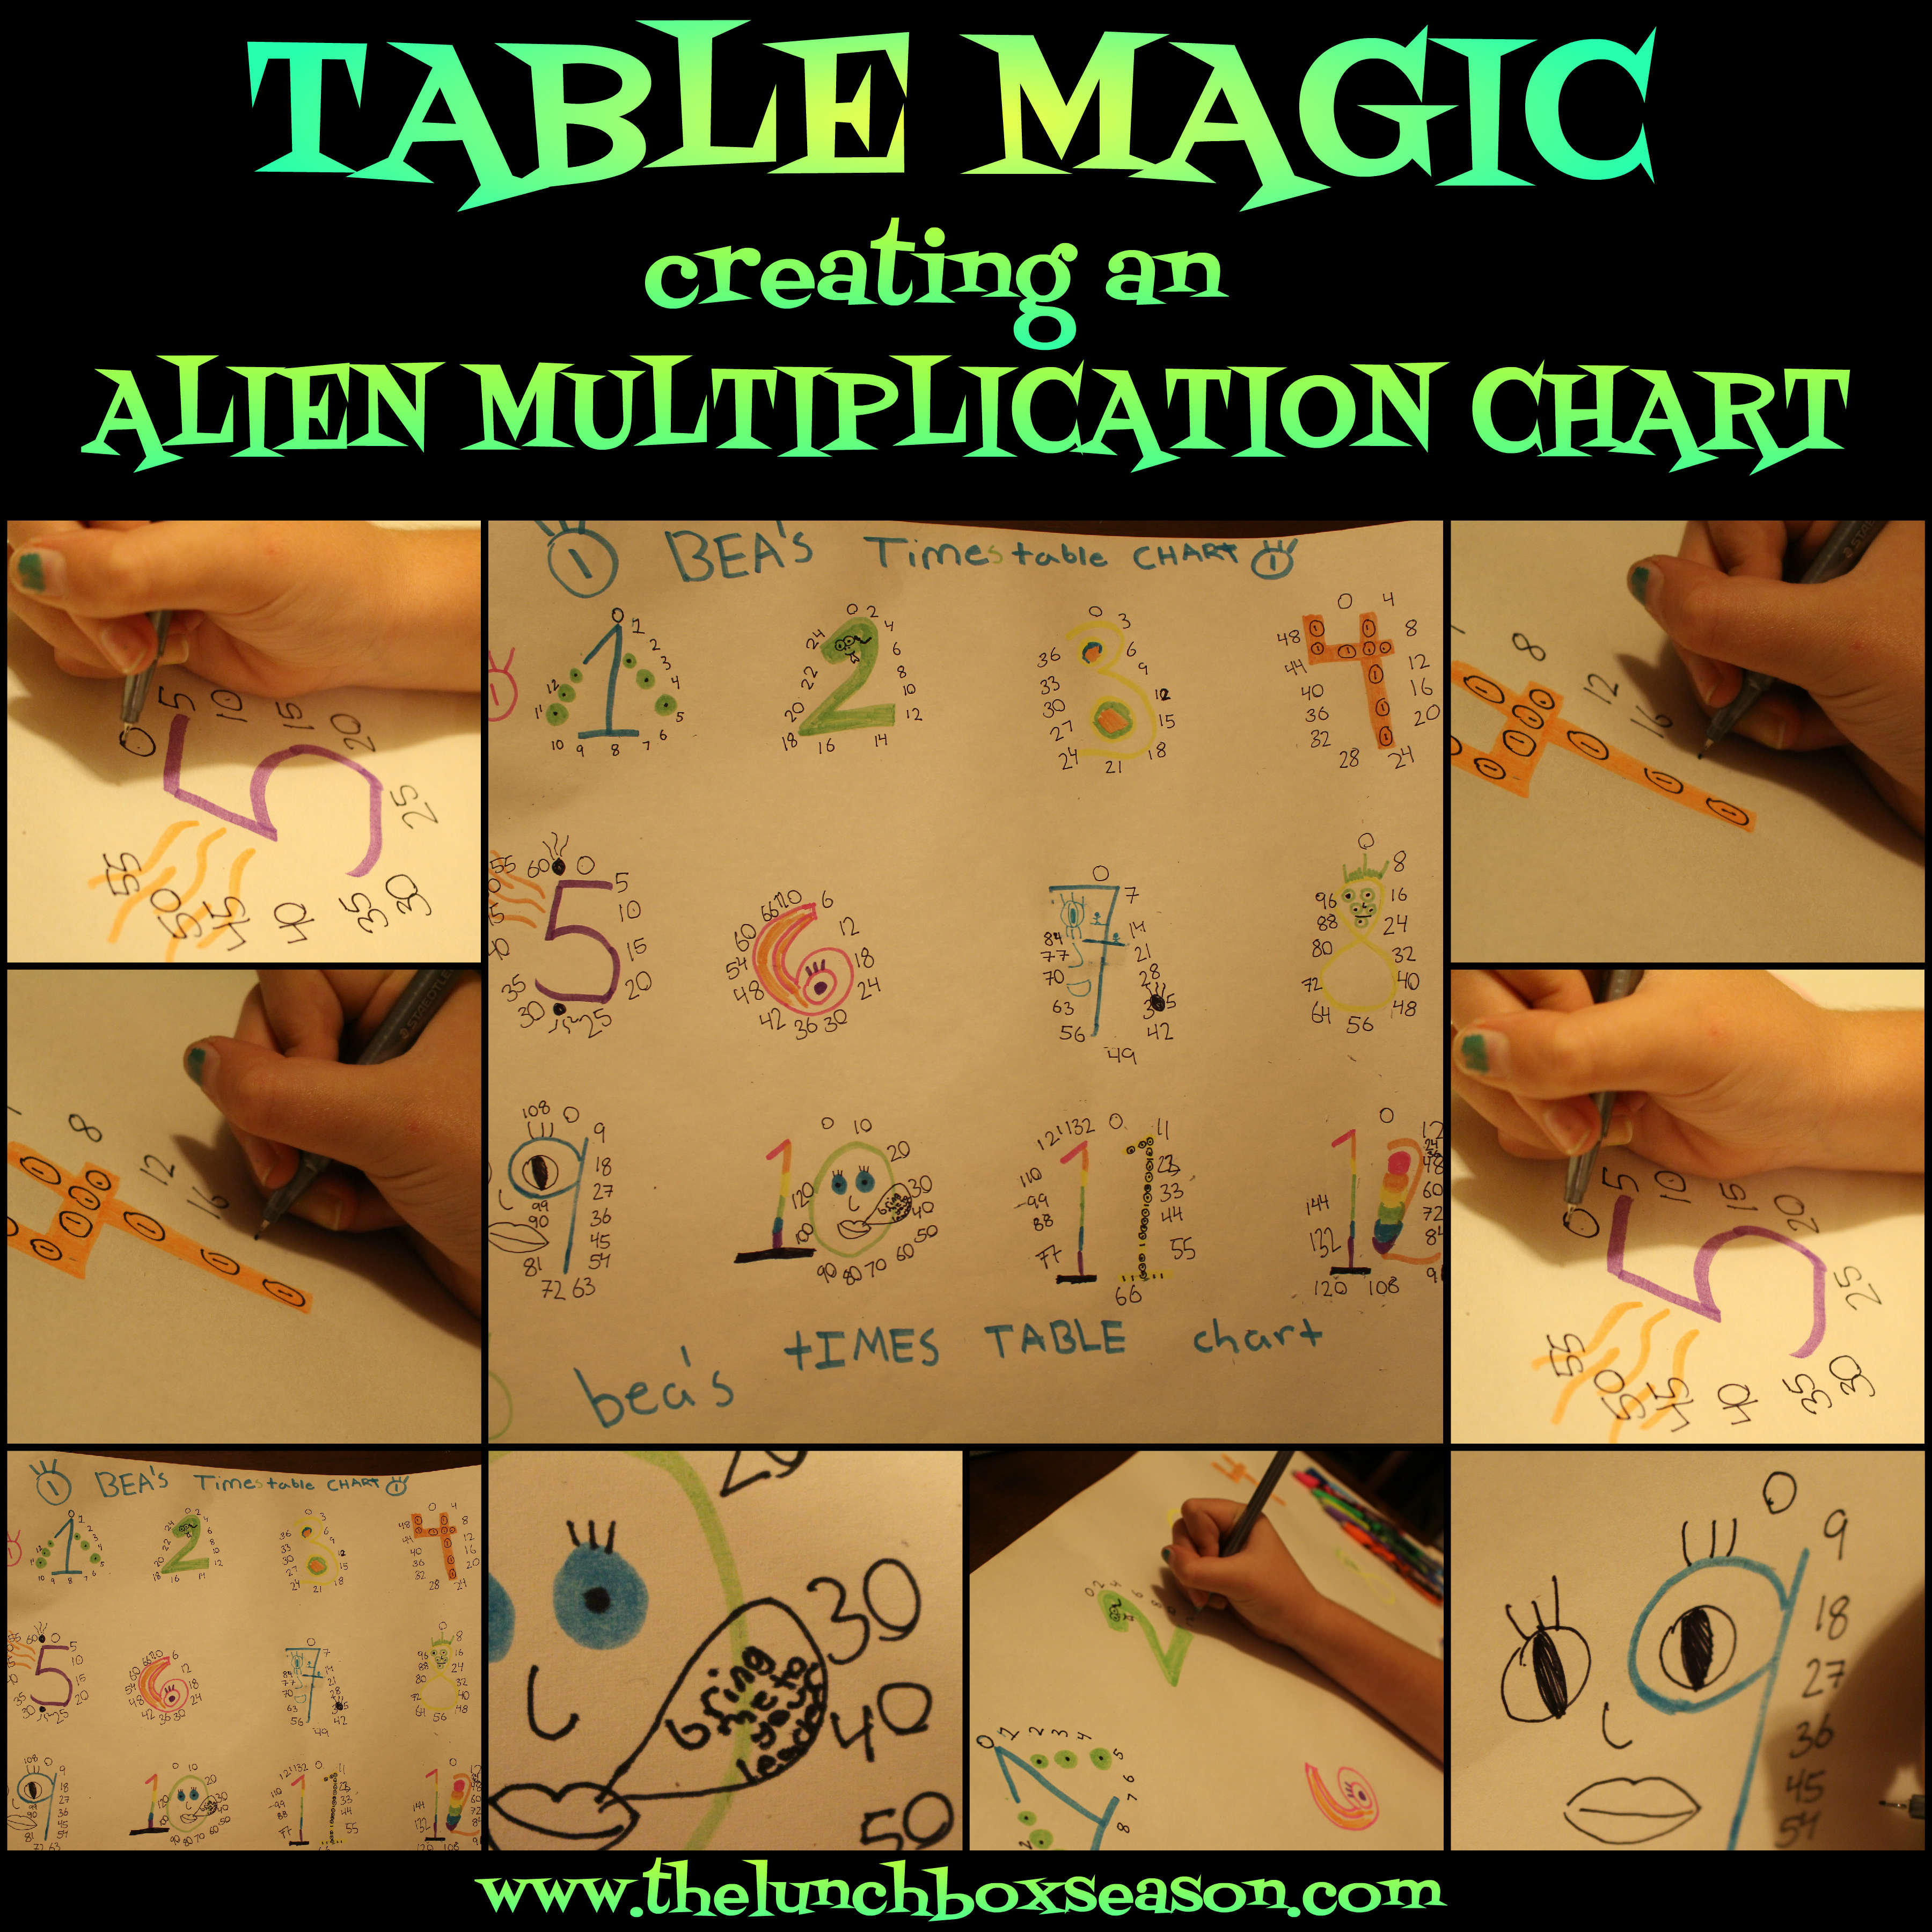 Who invented the multiplication table